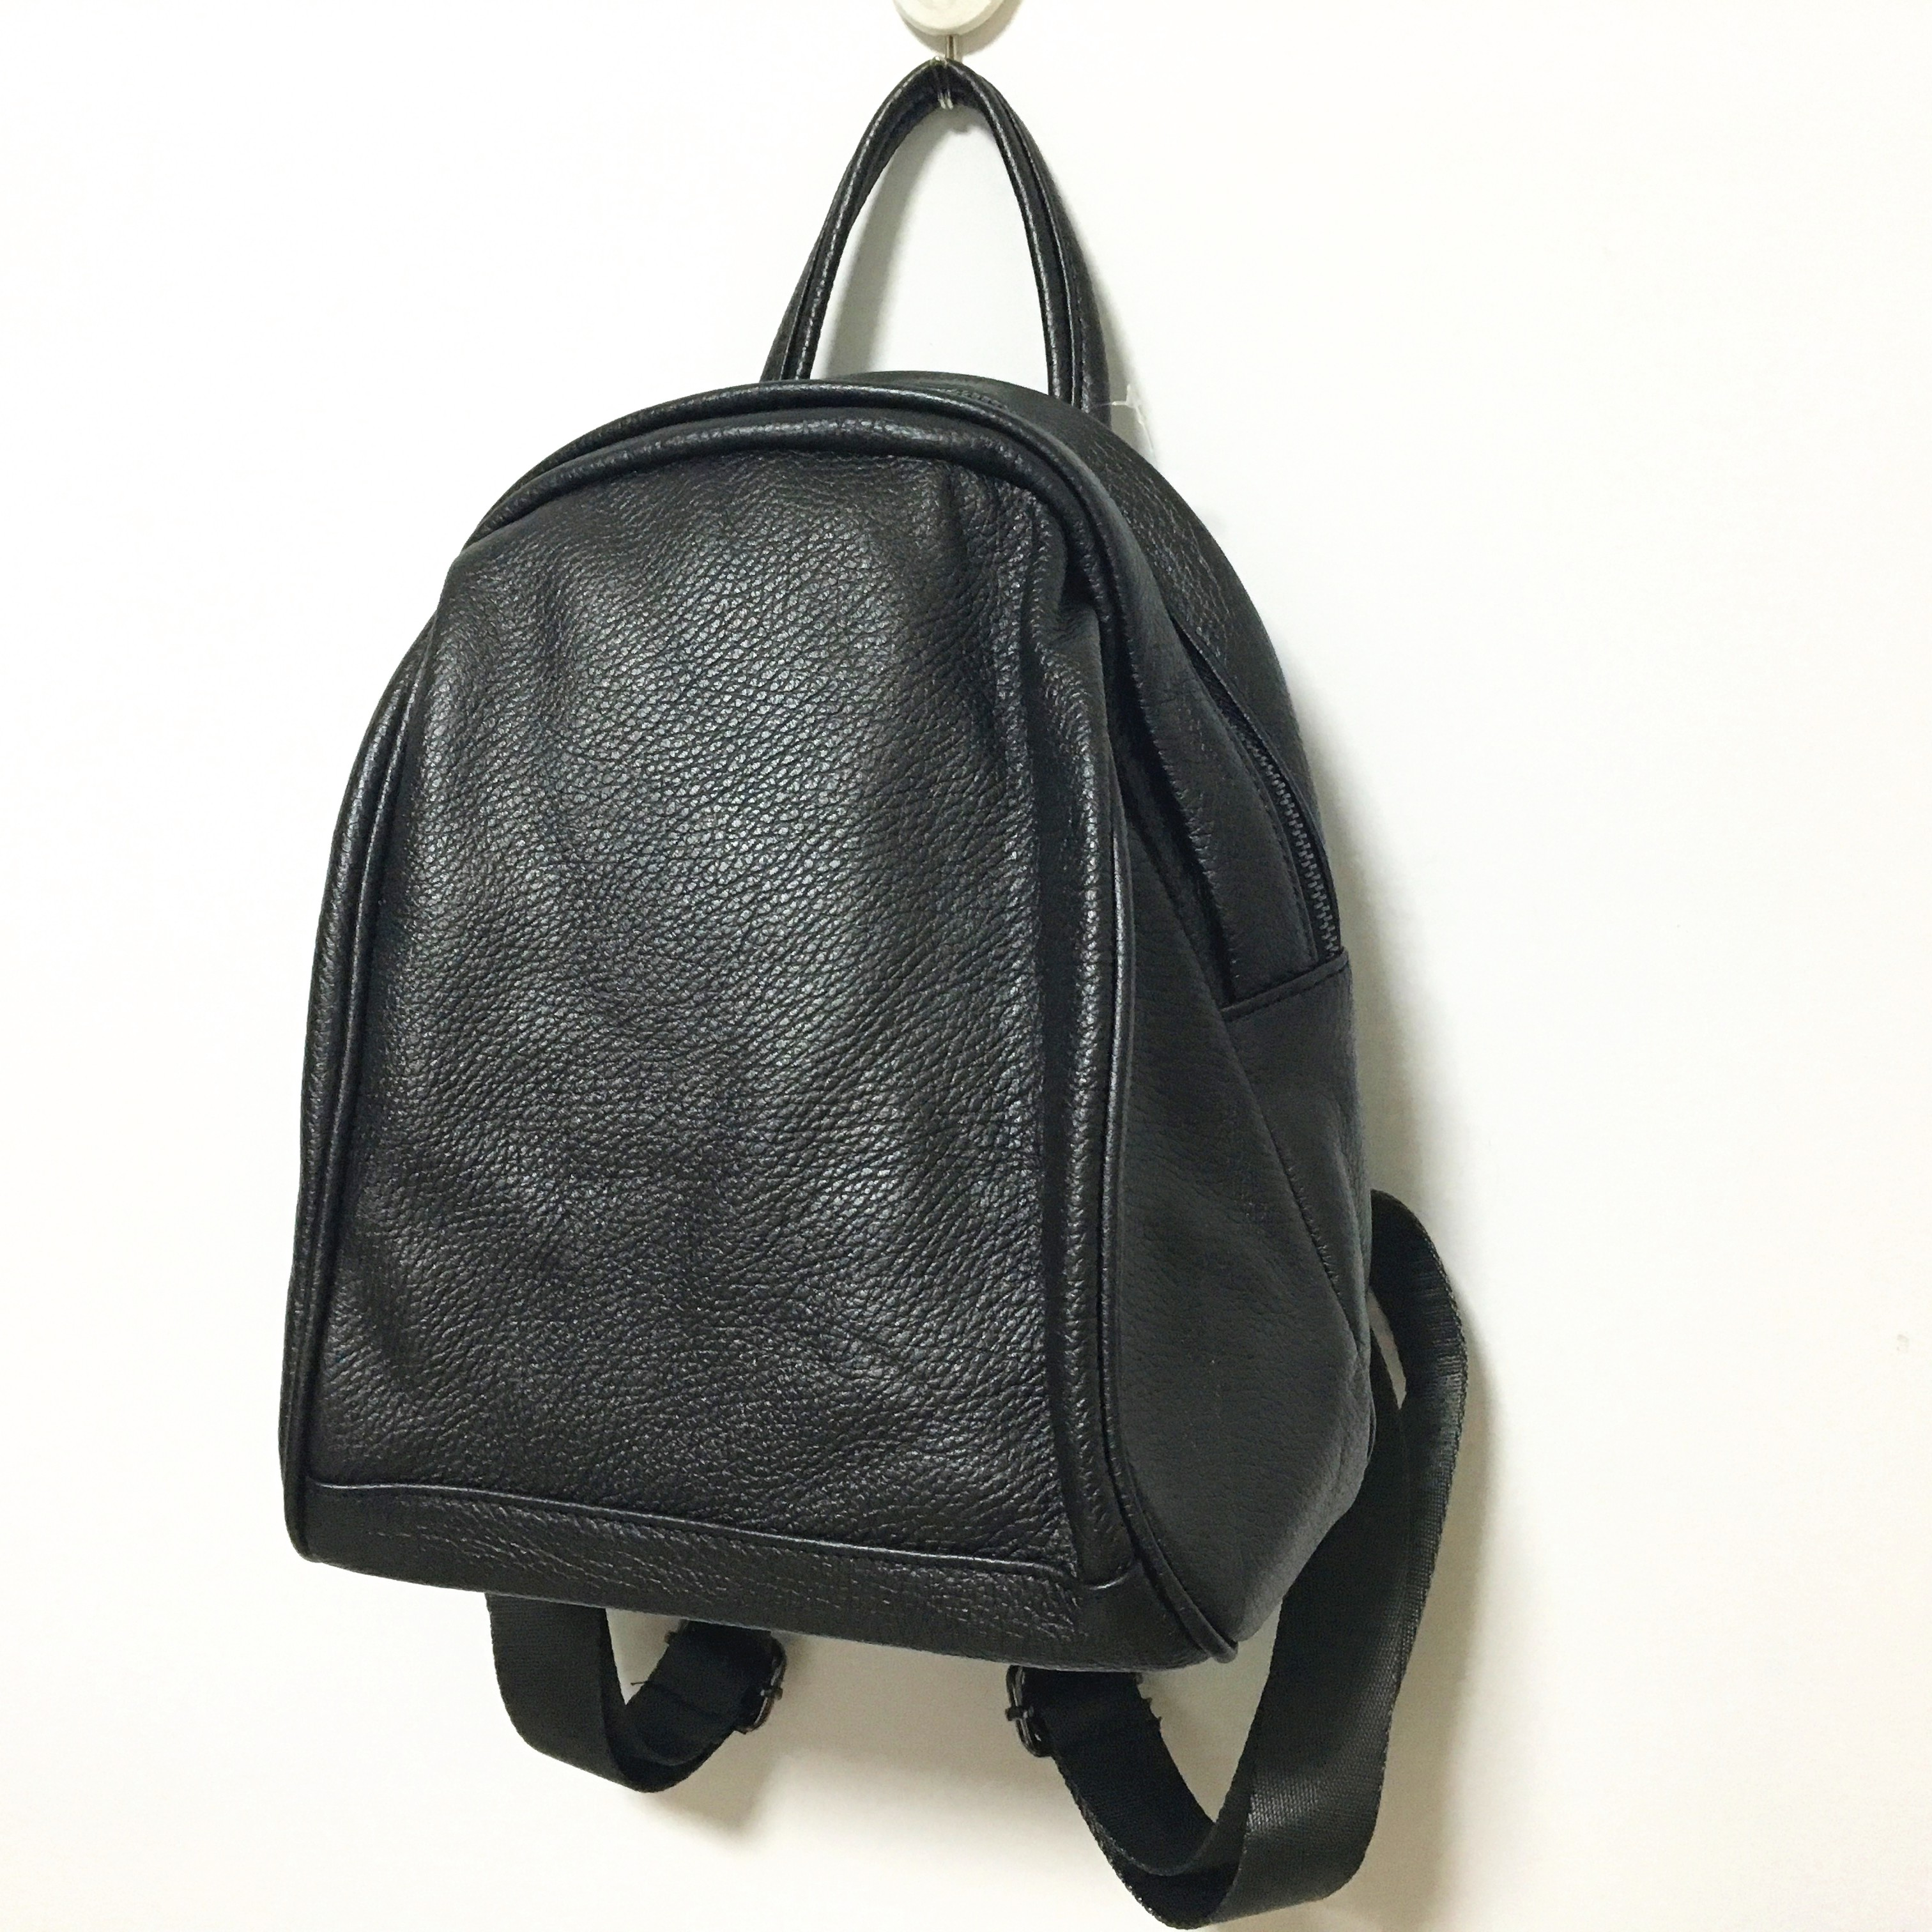 Wholesale Factory Price Vintage Women Backpack 100% Genuine Soft Leather Bagpack Preppy Style Girls School Bags Travel Mochila<br>